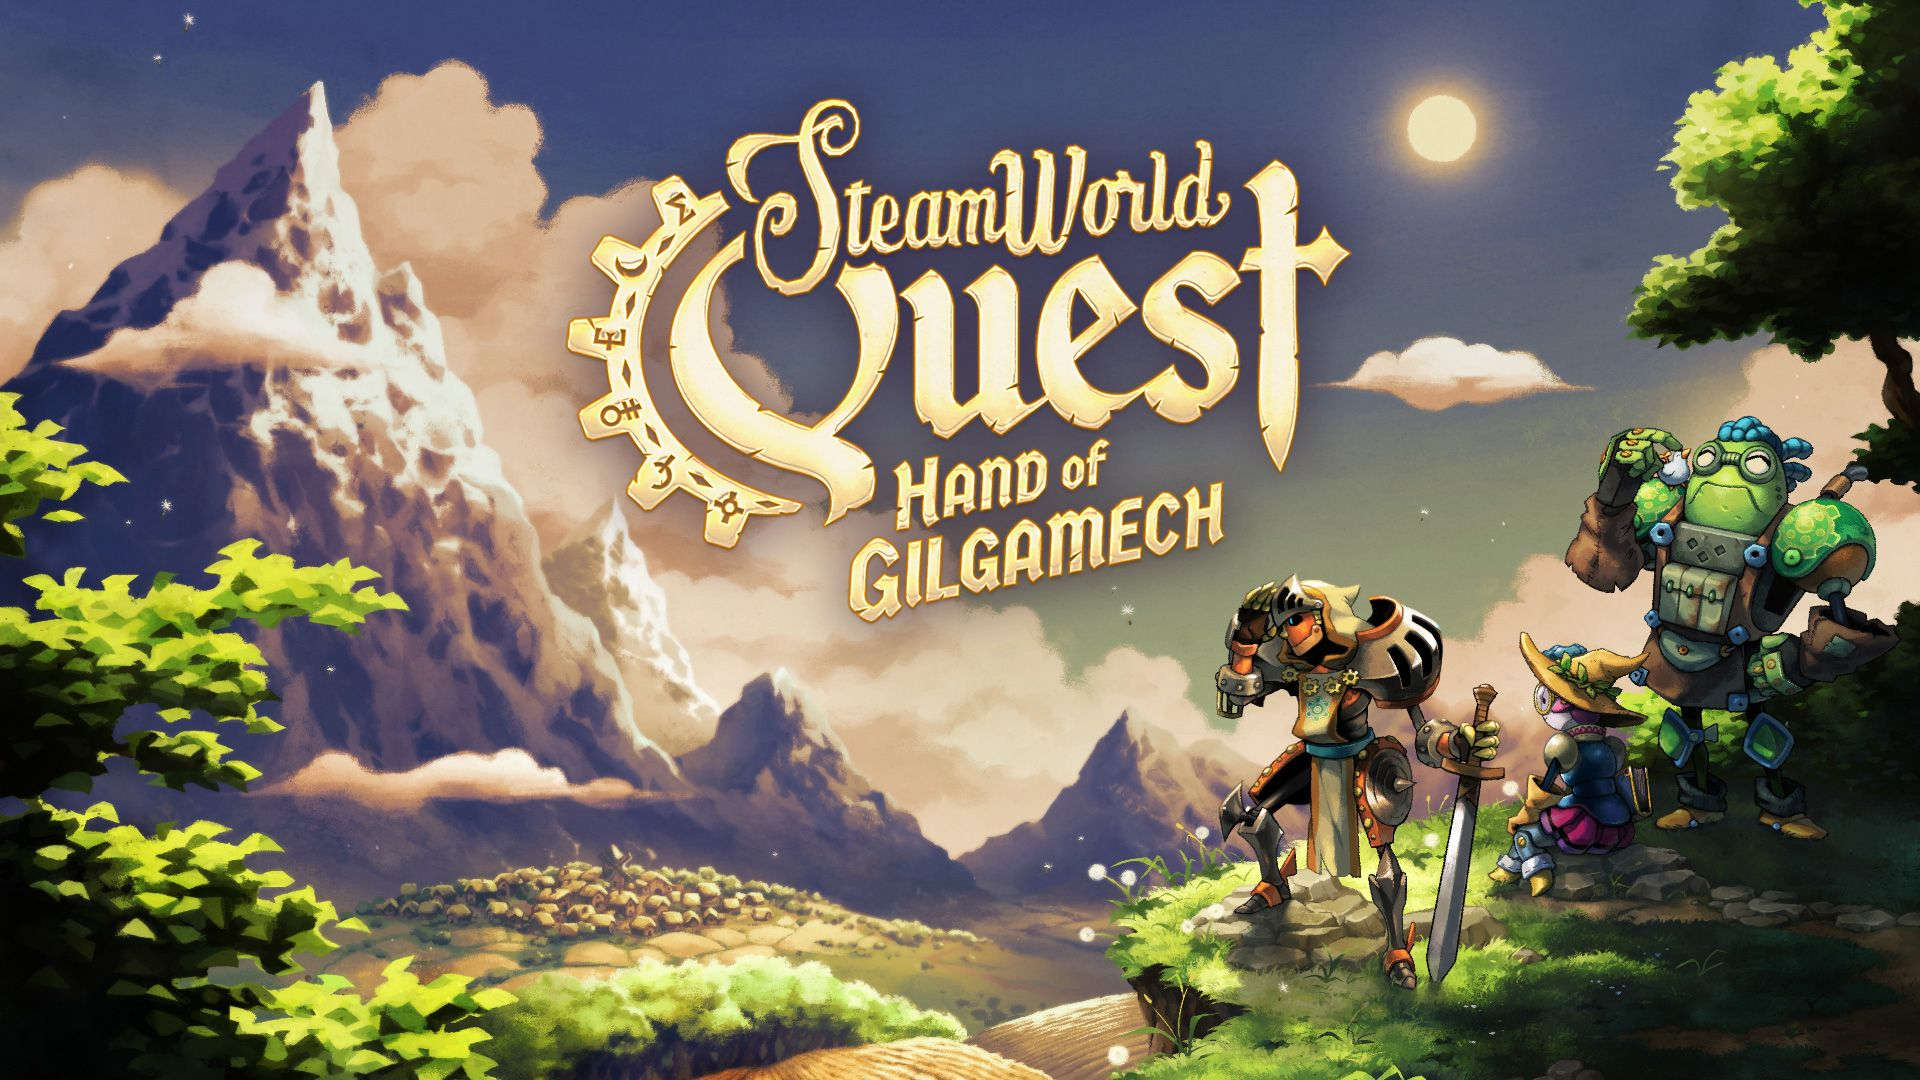 SteamWorld Quest - Hand of Gilgamech